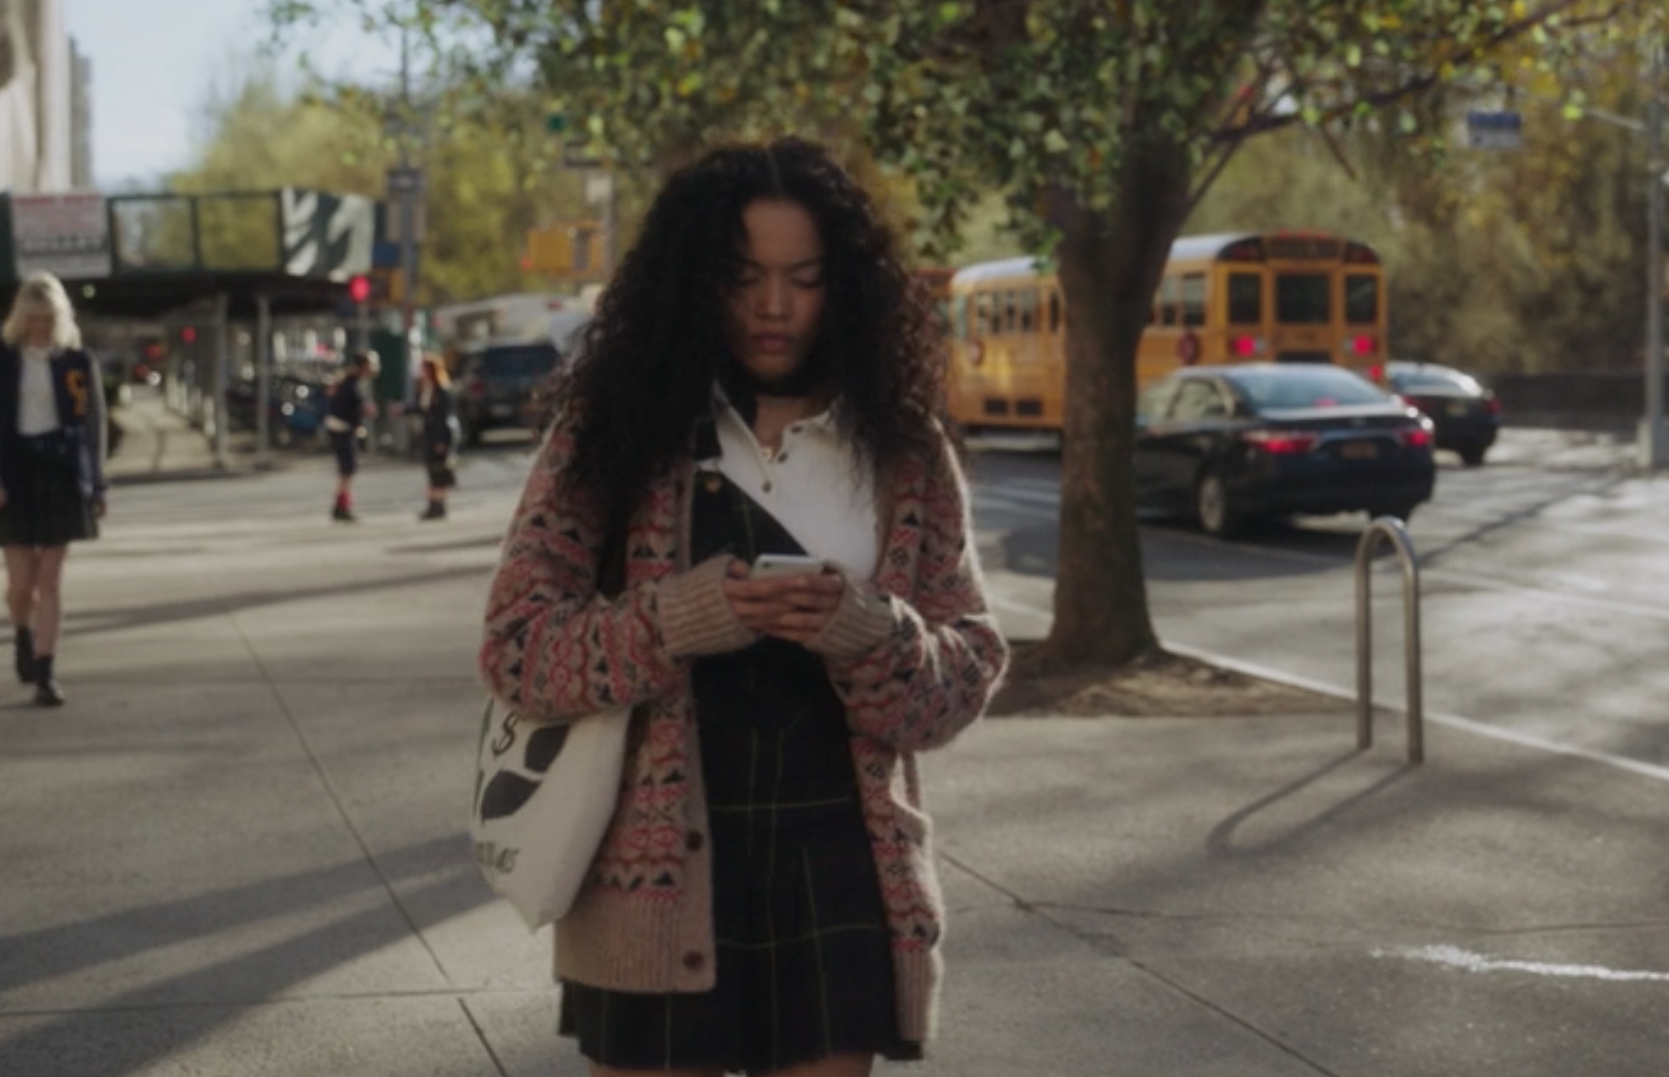 Zoya wears a plaid uniform jumper skirt with one strap attached to the top button, over a T-shirt with a patterned cardigan on top